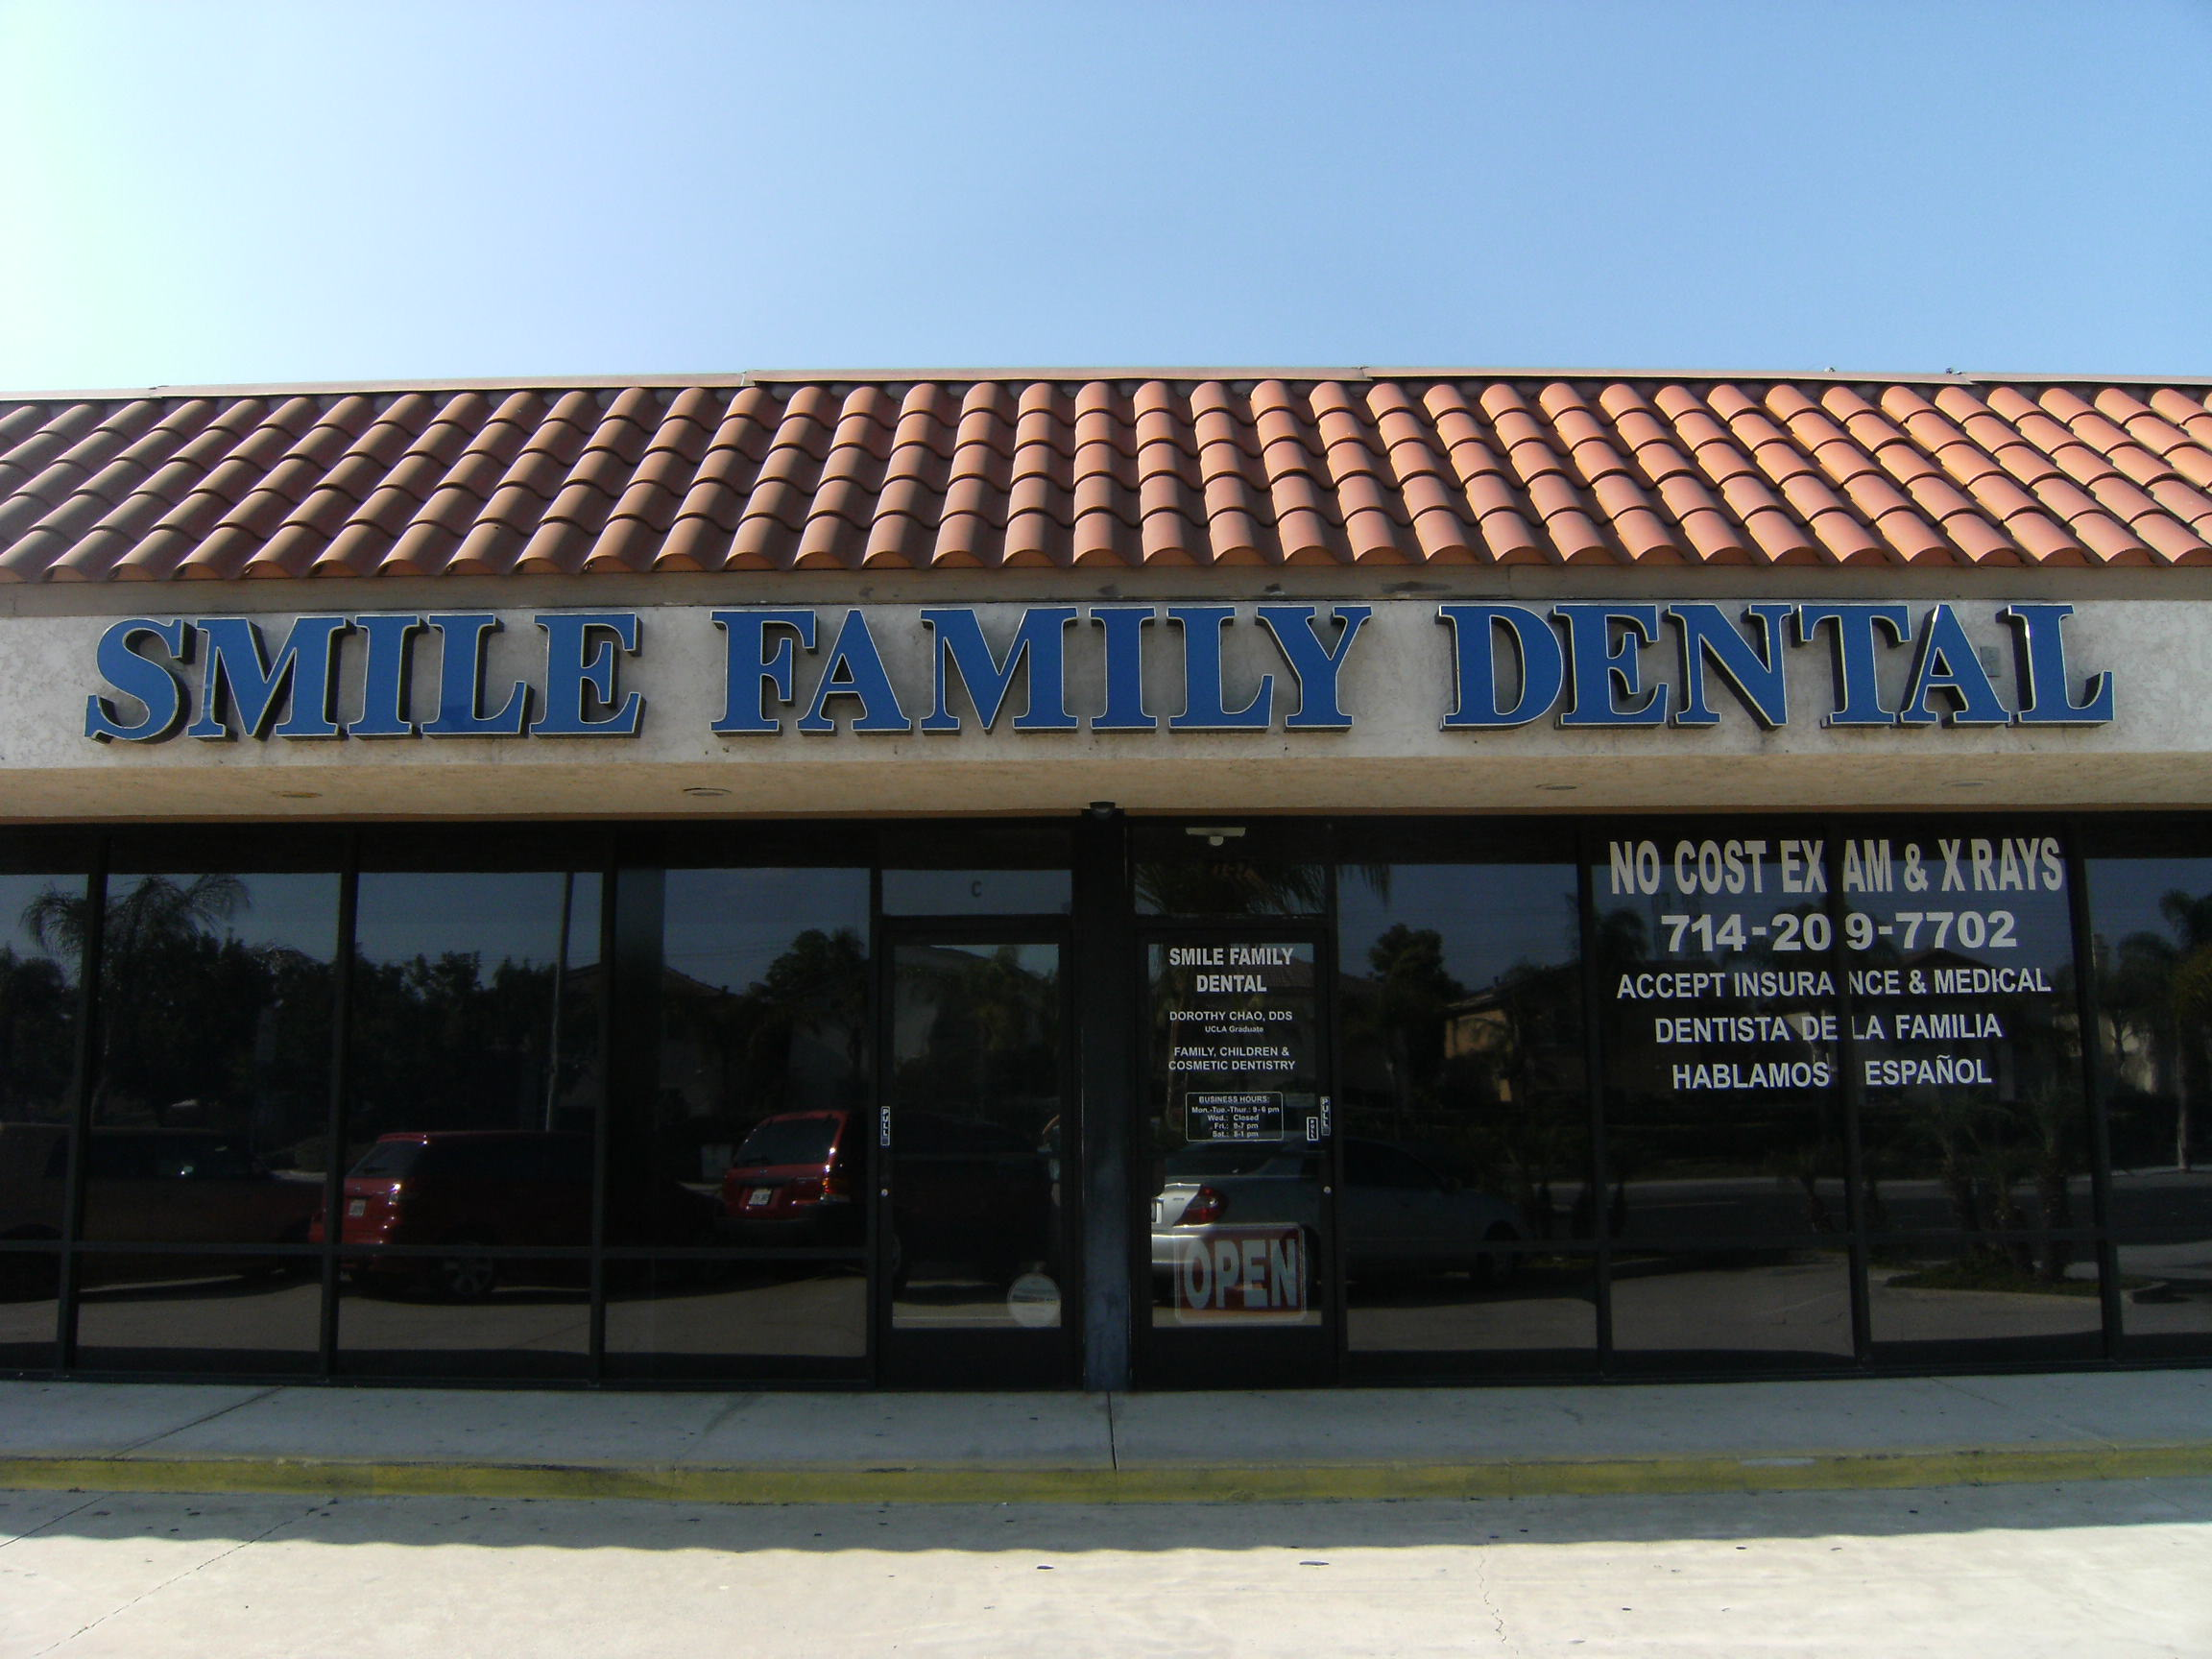 Dorothy W. Chao, DDS